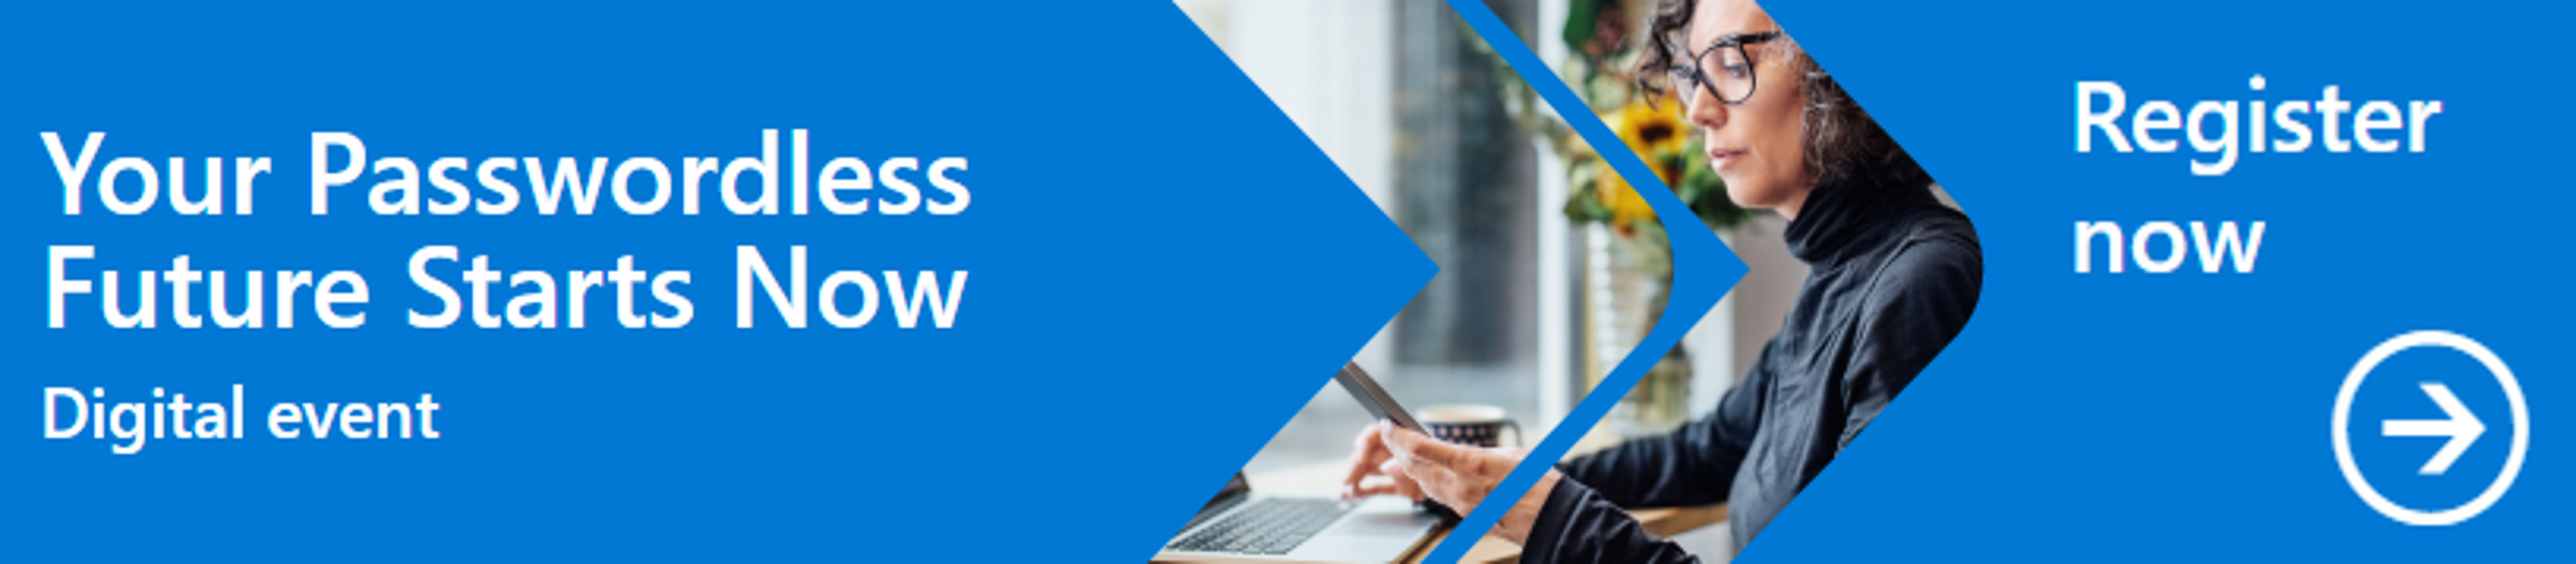 Register now for the Passwordless Future digital event